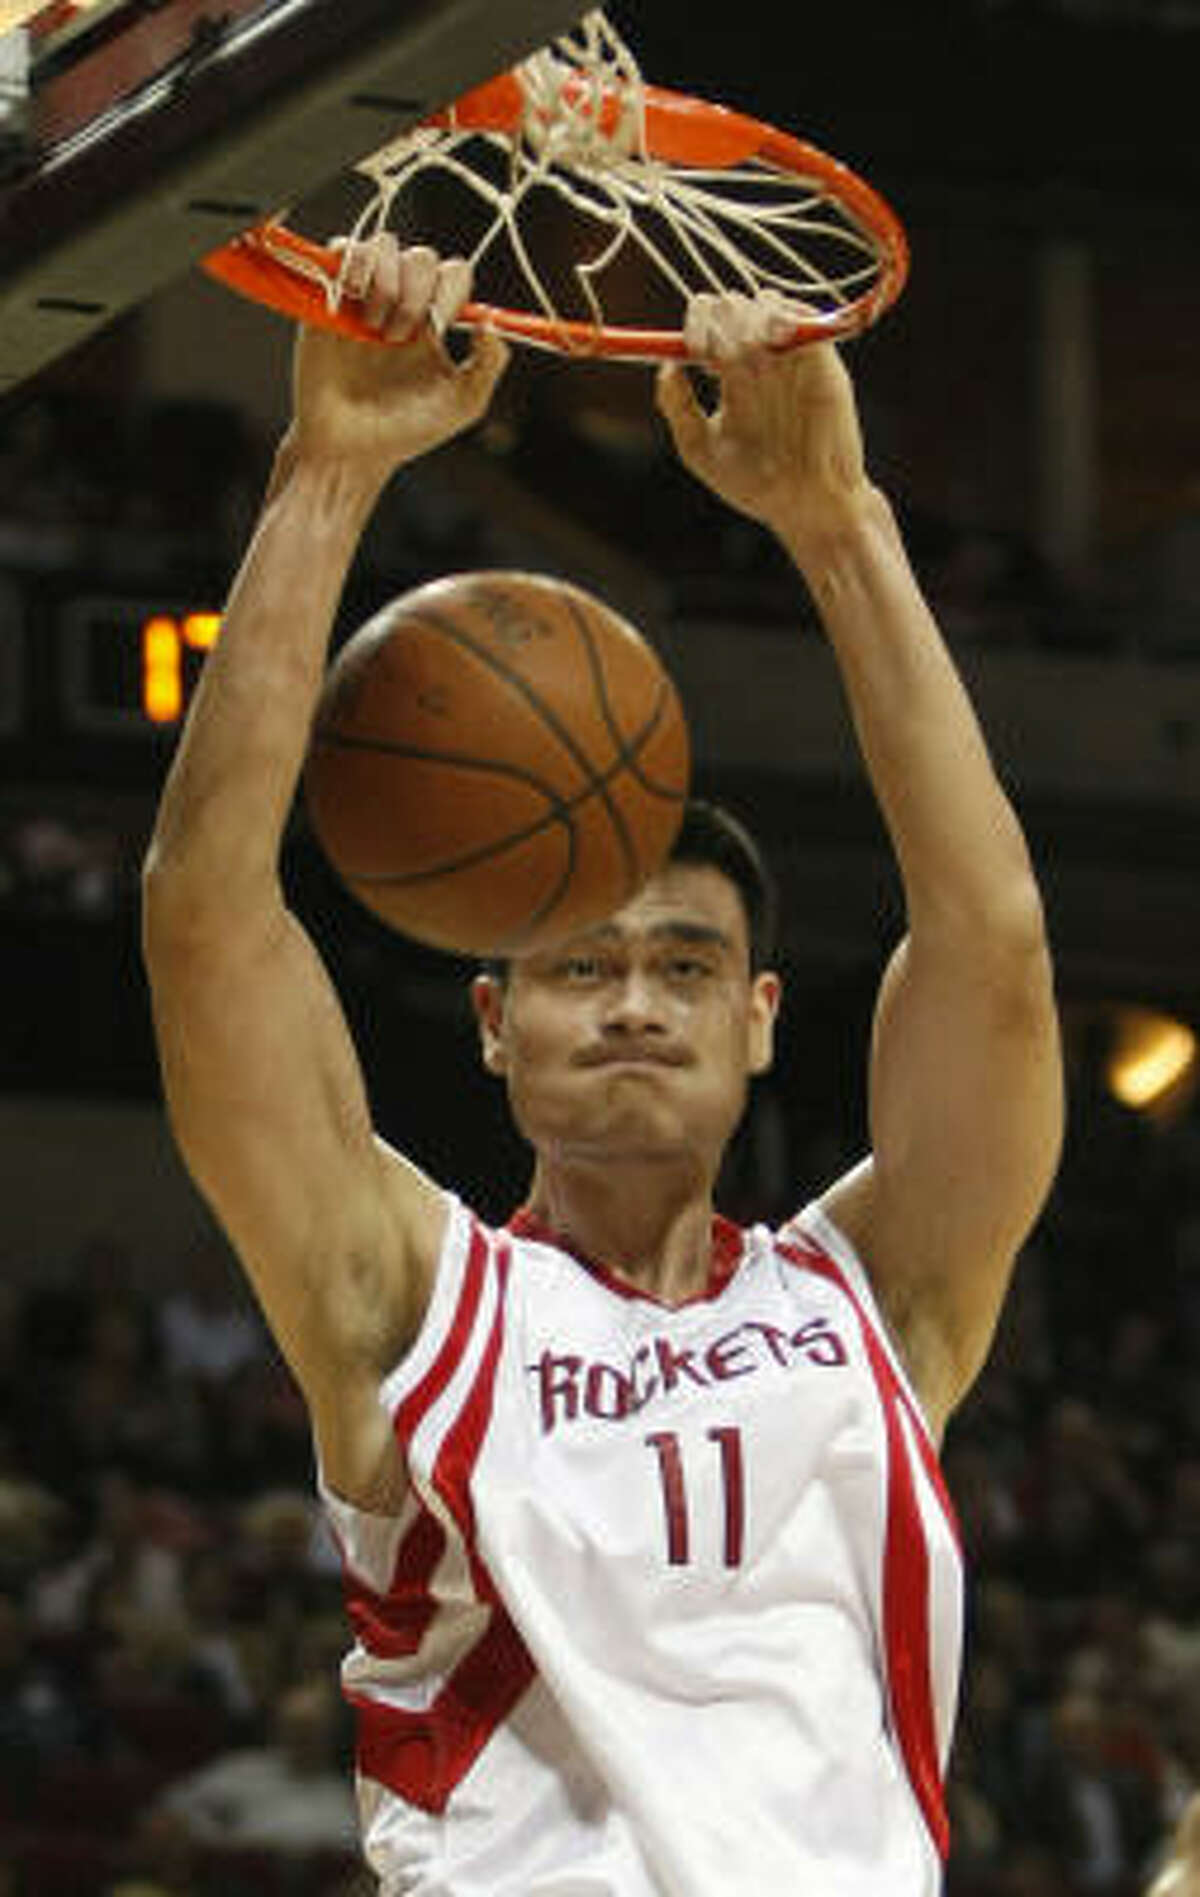 Western ConferenceYao Ming, C, Houston Rockets 2,532,958 votes